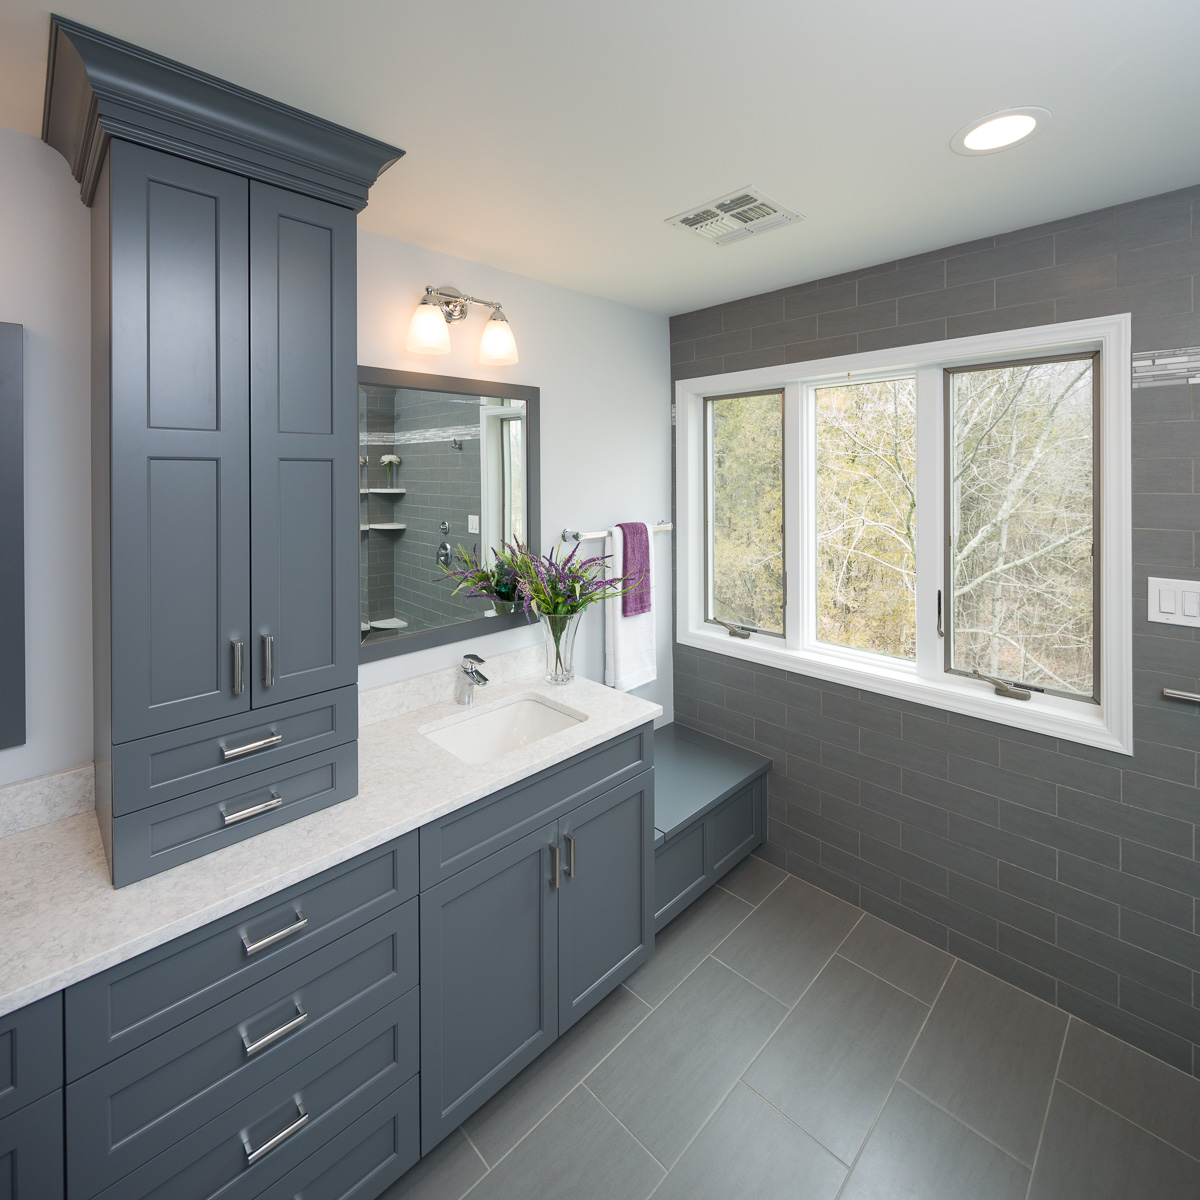 Skippack Kitchen & Bath -  skippackkitchens.com